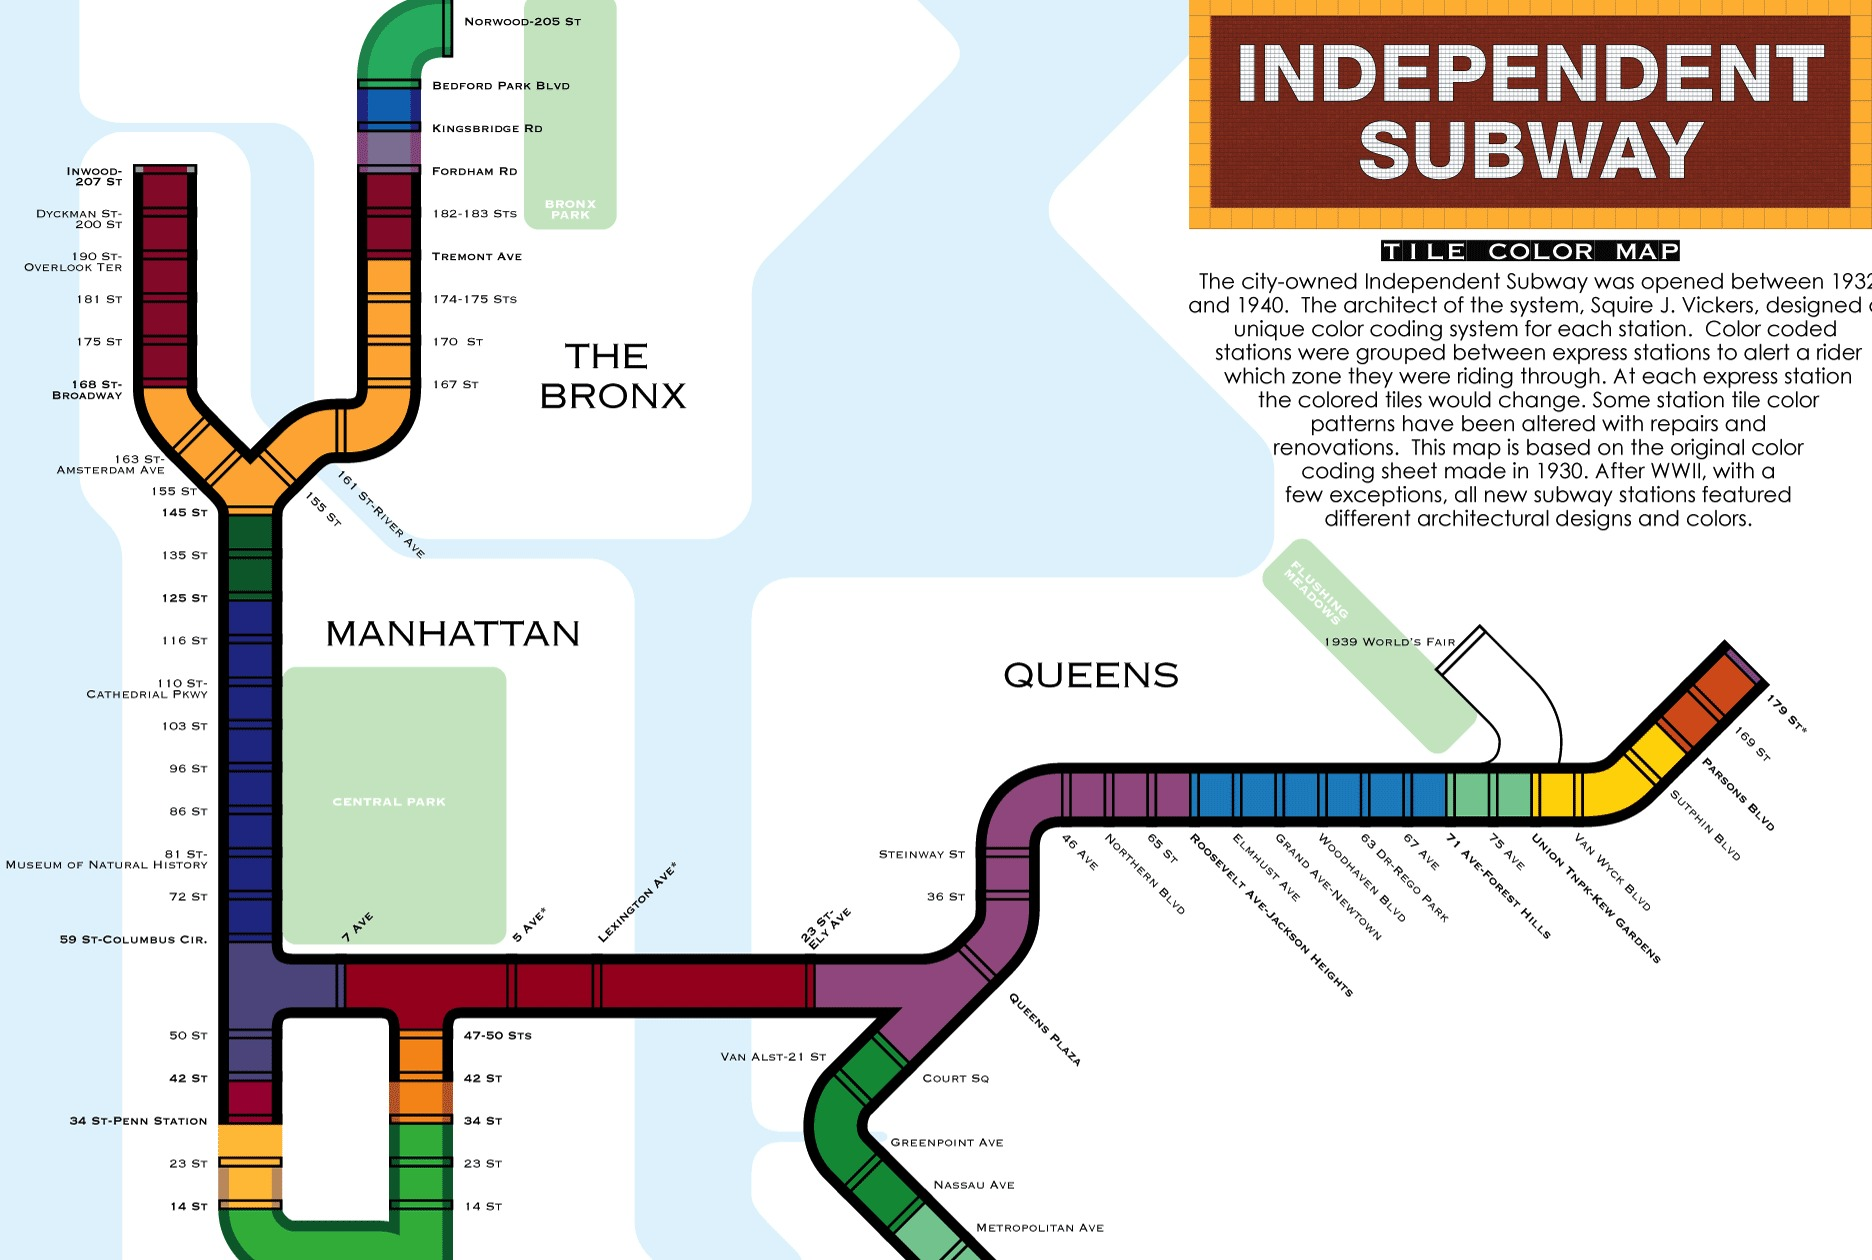 Large Ny Subway Map.This Map Explains The Historic Tile Color System Used In Nyc Subway